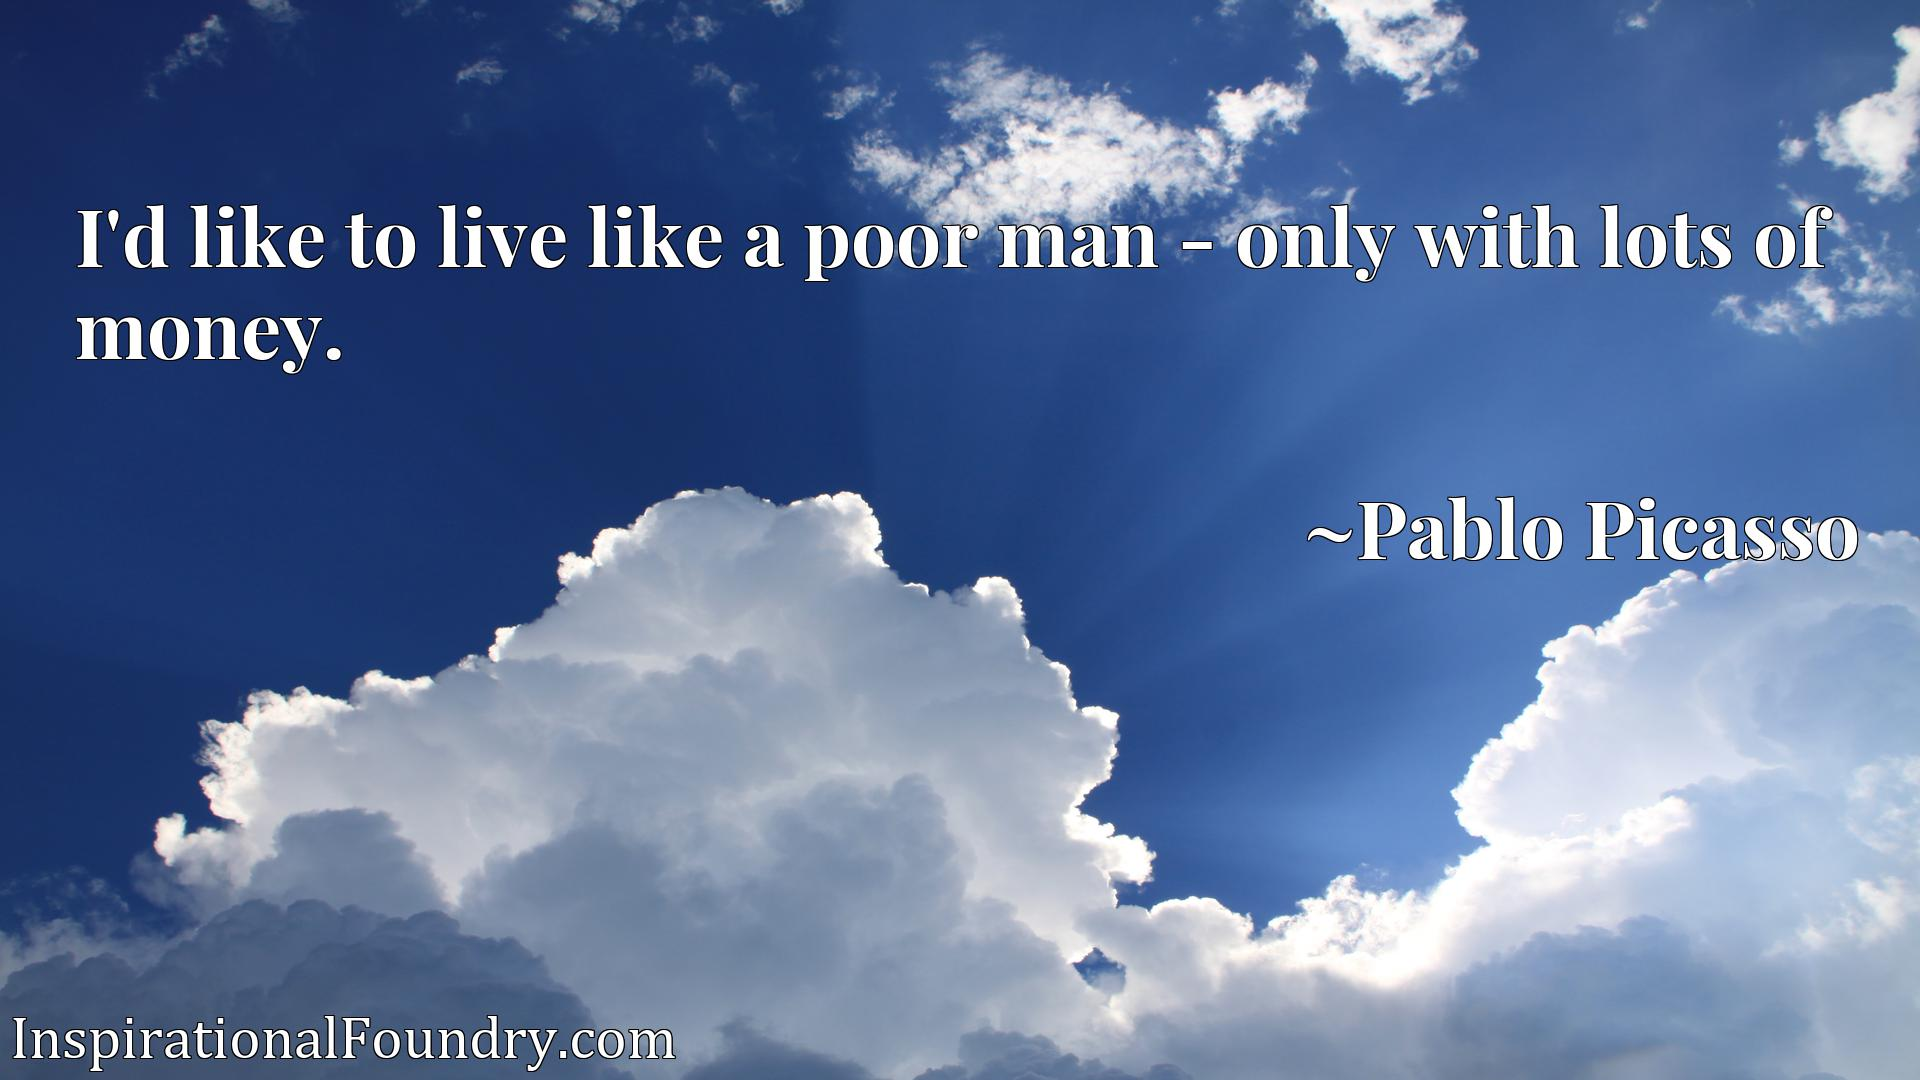 I'd like to live like a poor man - only with lots of money.